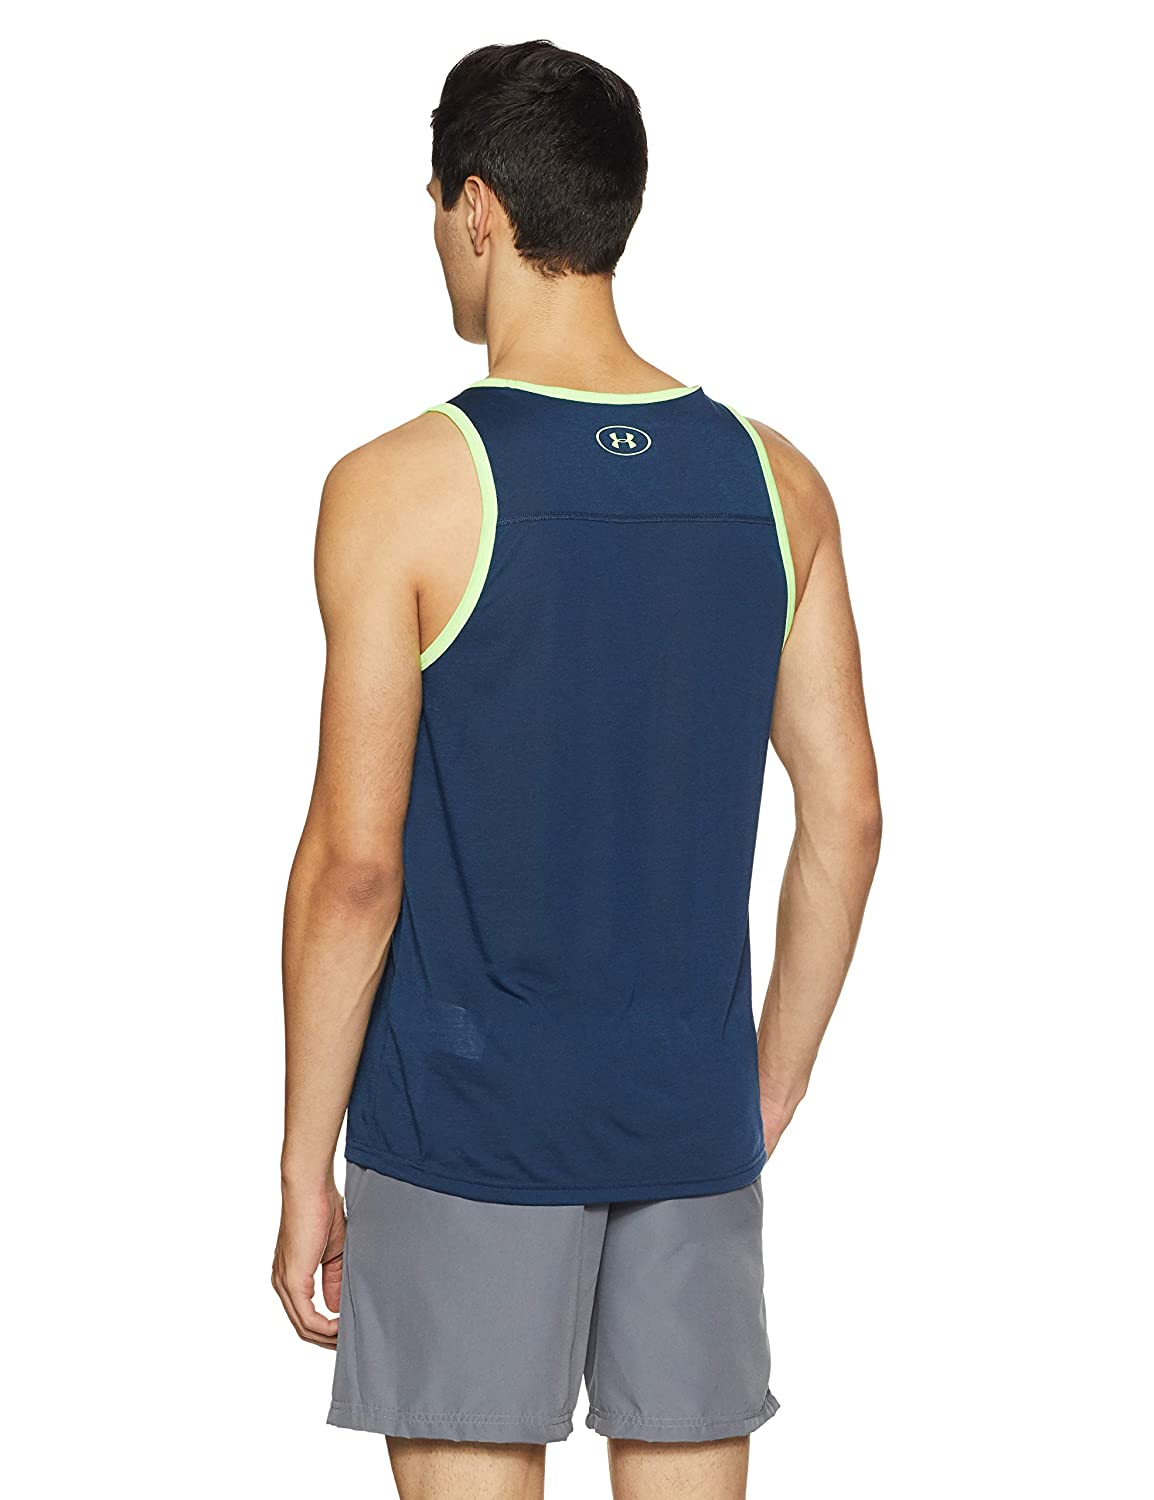 358ab1e6db599 Amazon.com  Under Armour Men s Threadborne Siro Tank  Sports   Outdoors